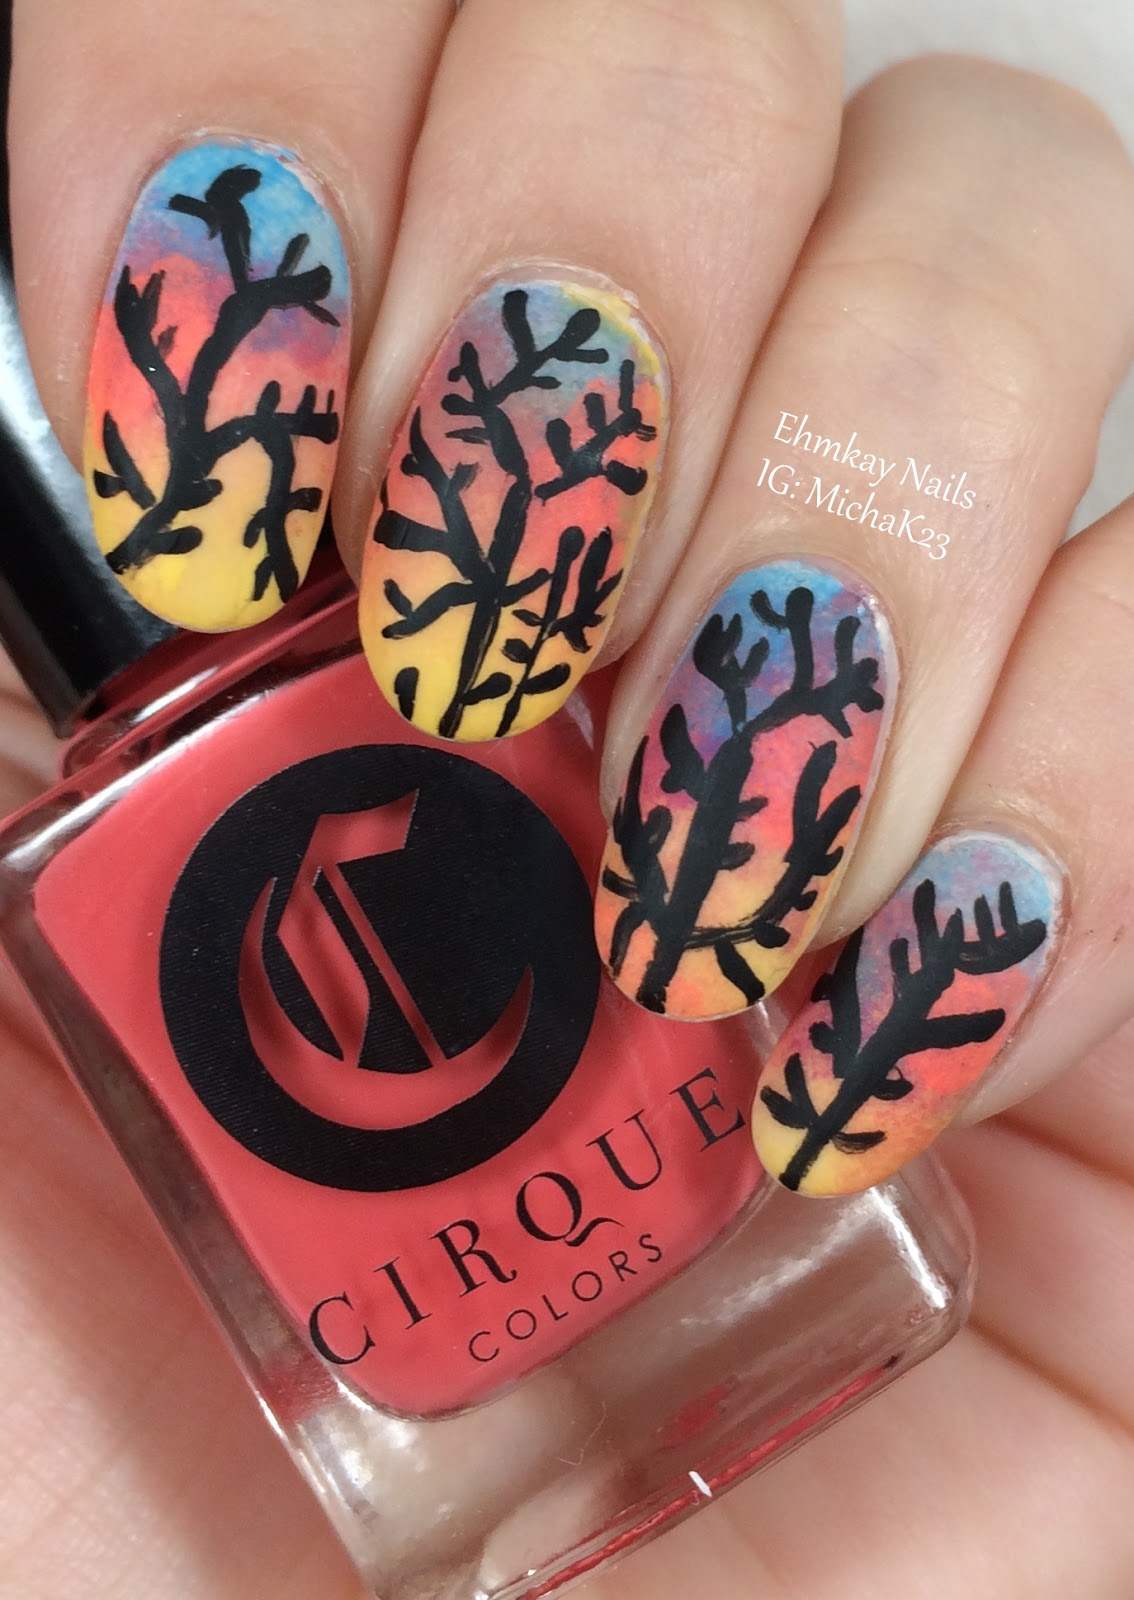 Ehmkay Nails Sunset Nail Art Gradient With Trees